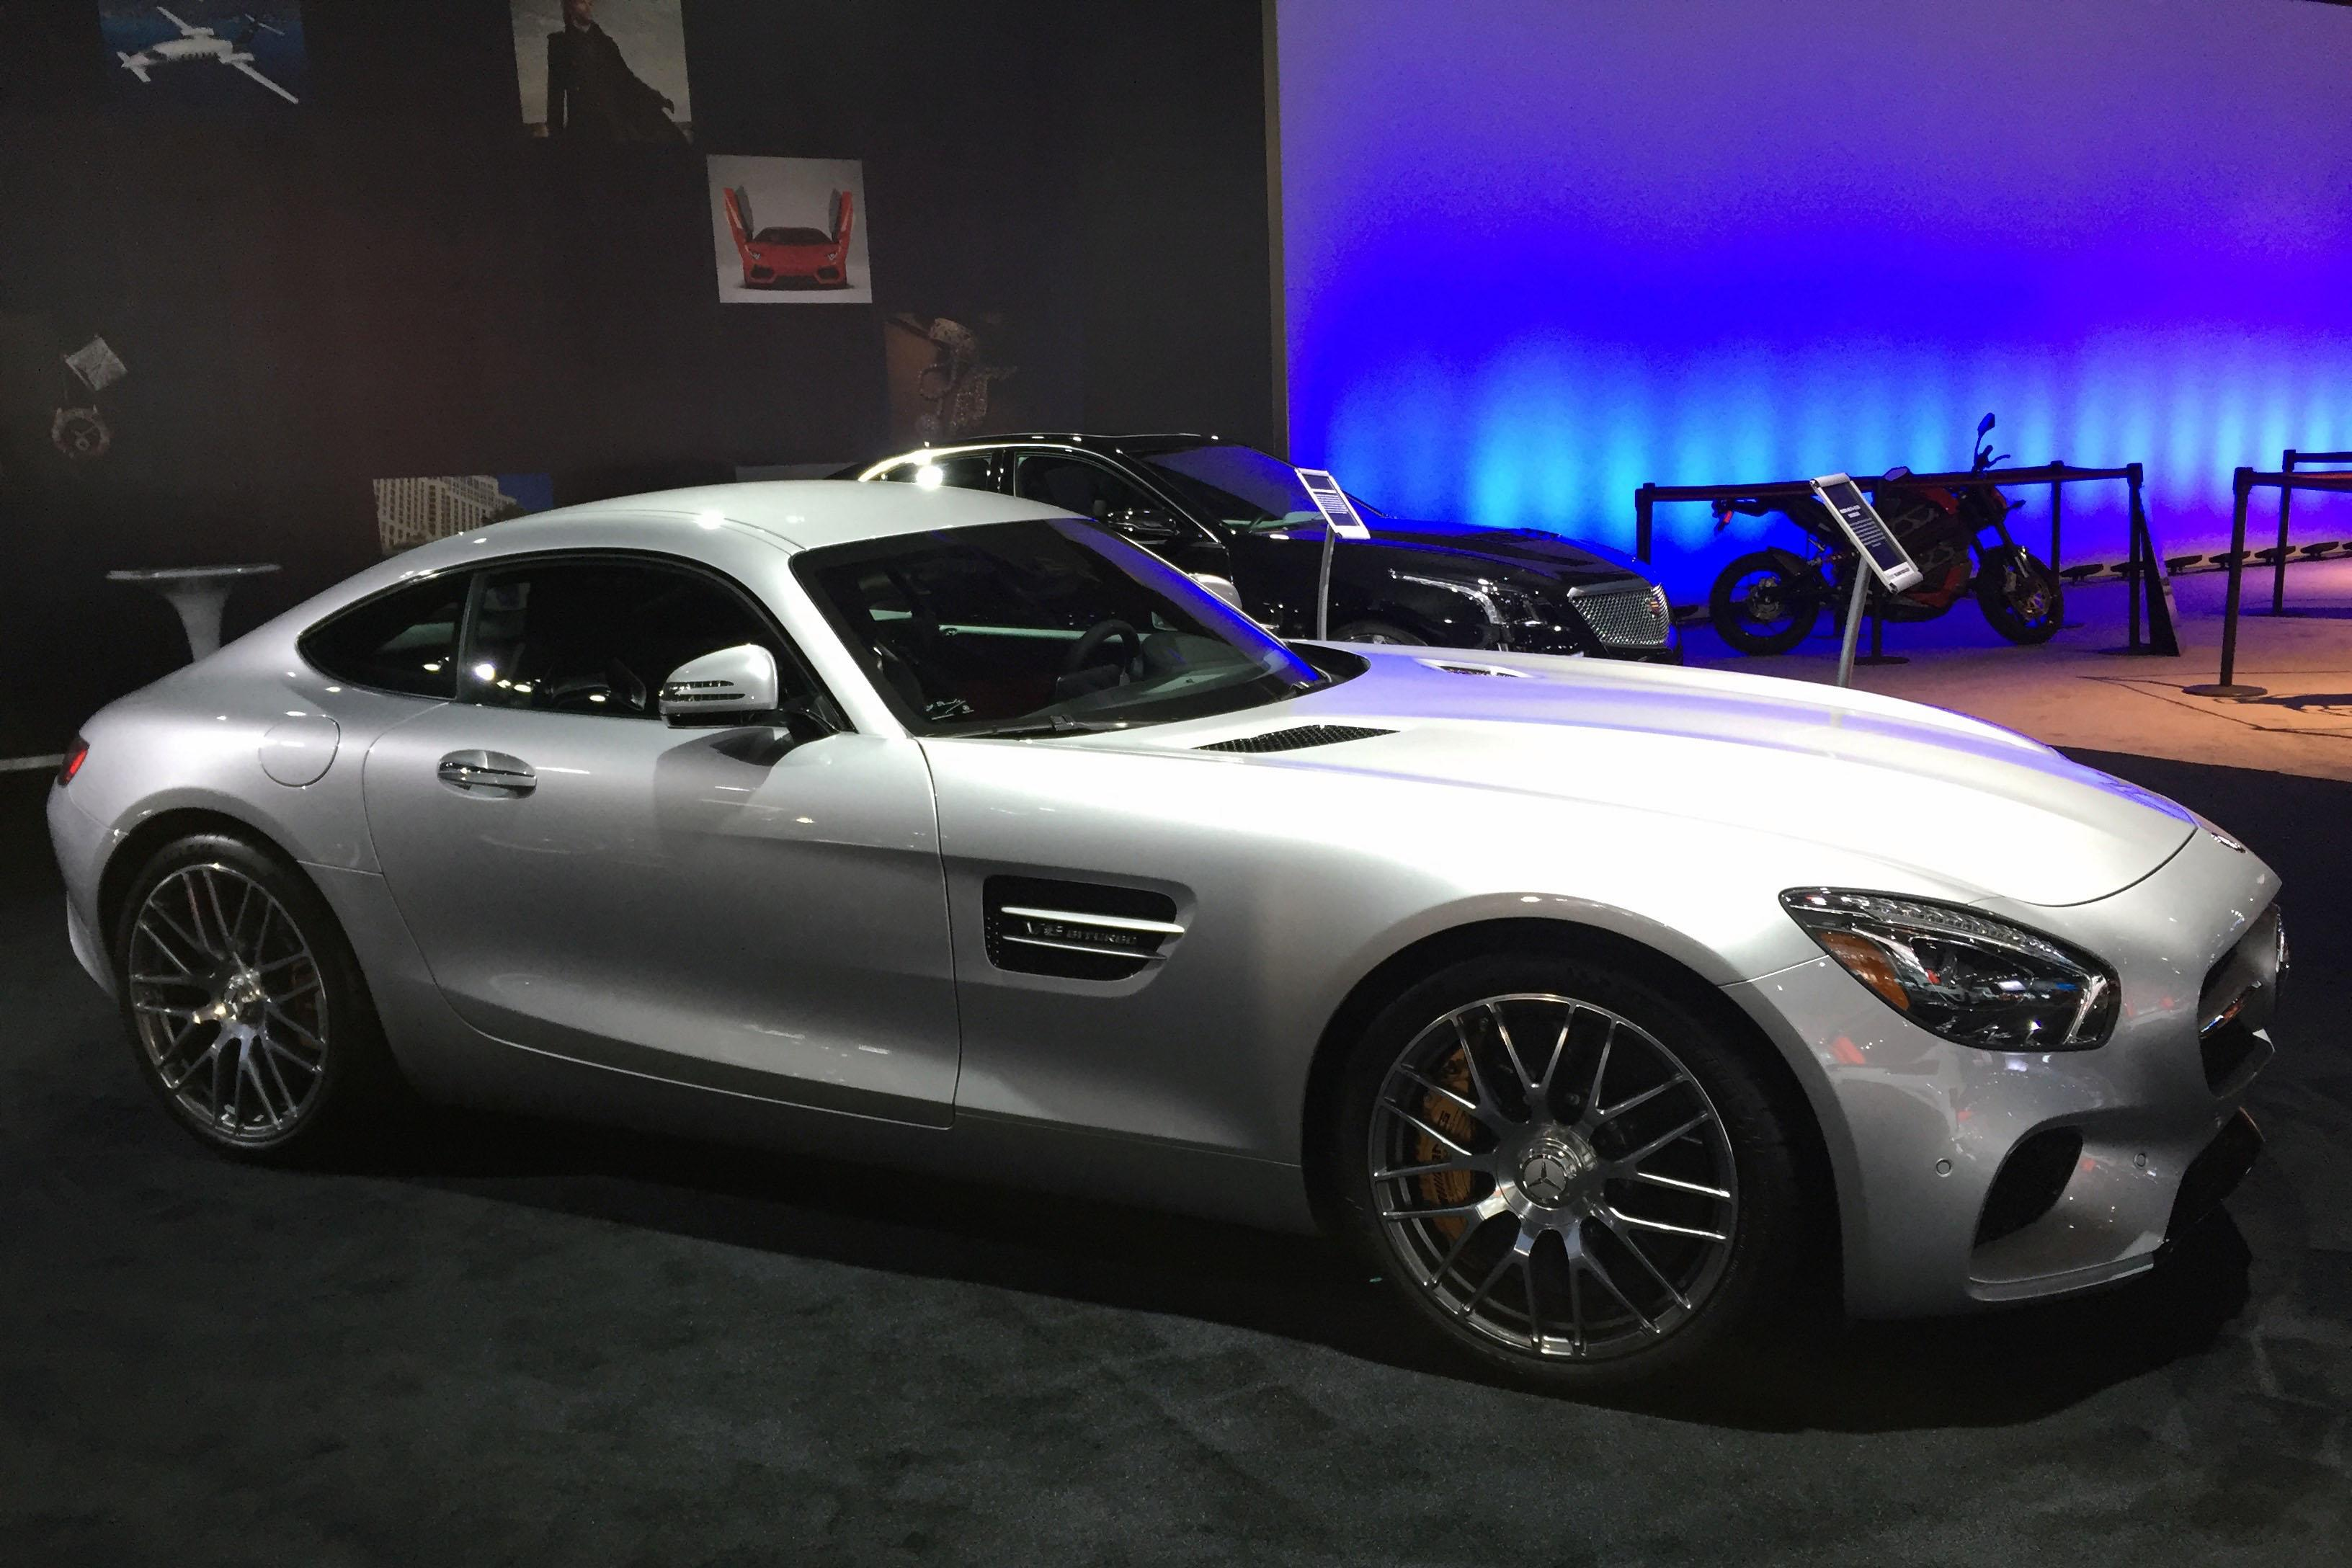 Mercedes AMG GT-S (Photo by Jill Ciminillo)